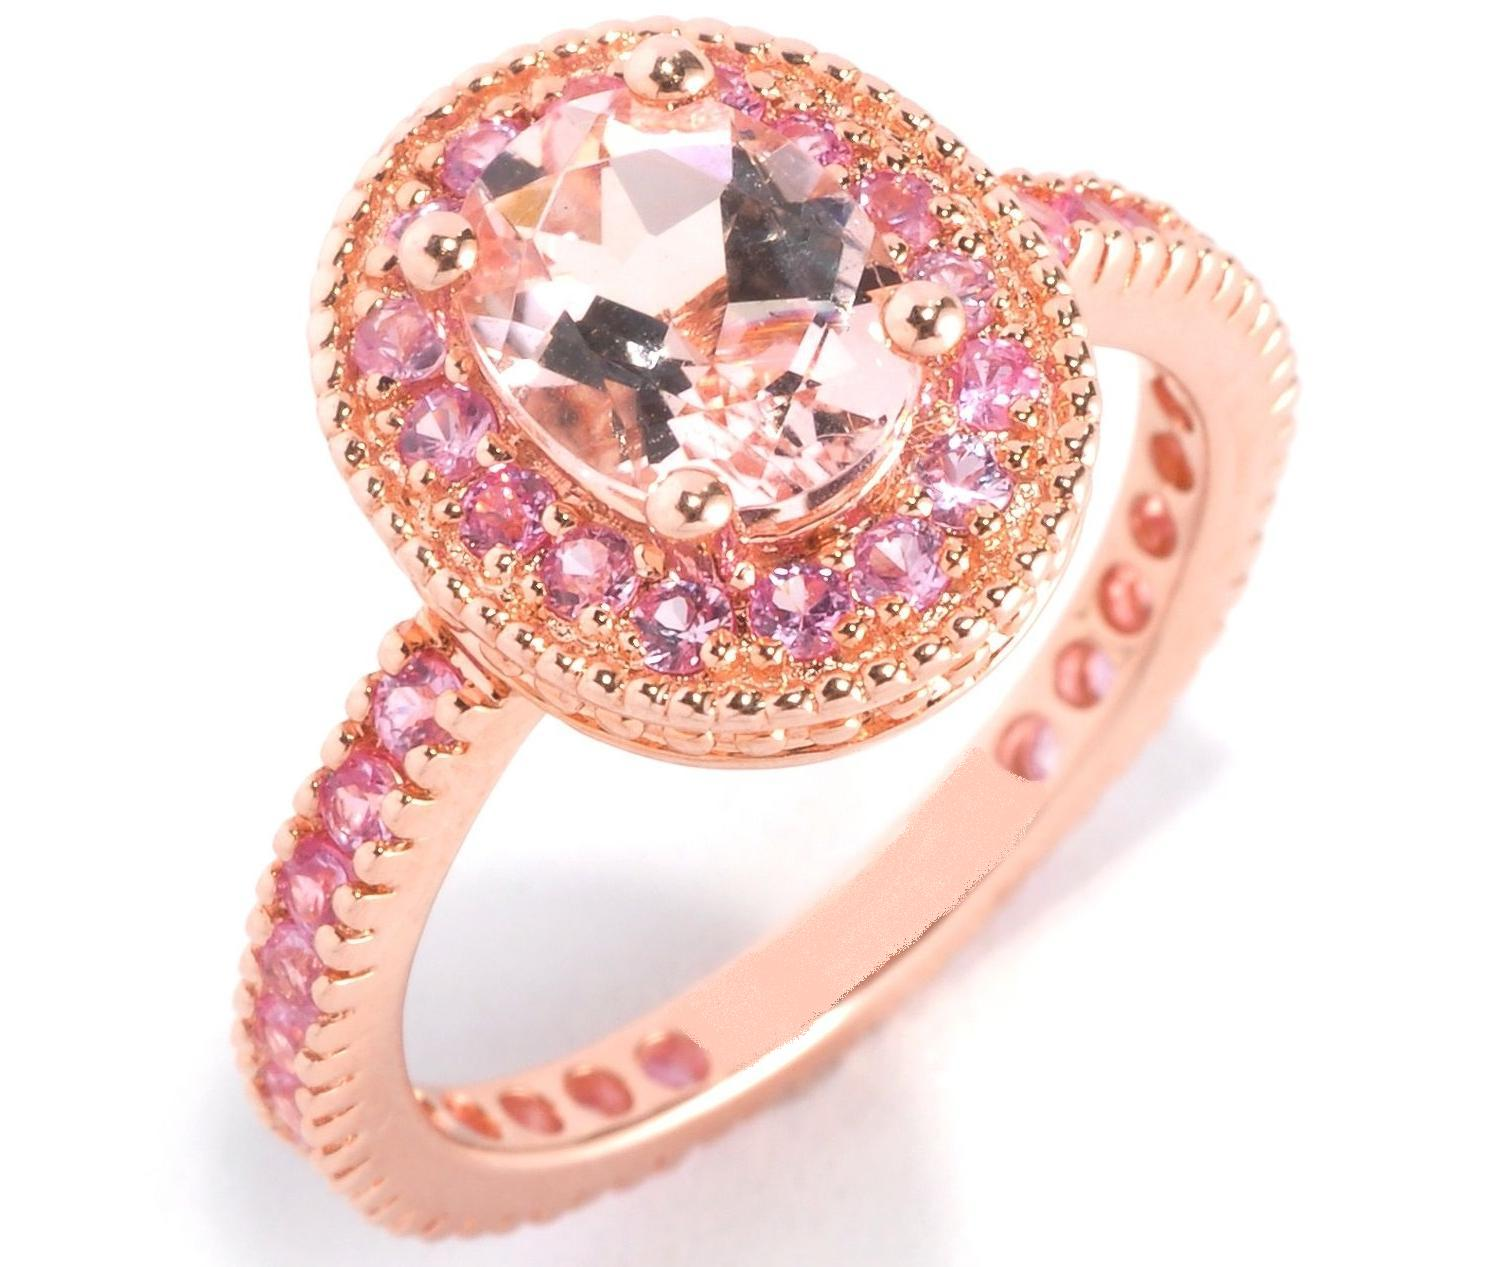 European Engagement Ring - Oval Morganite Pink Sapphire Halo 14K ...